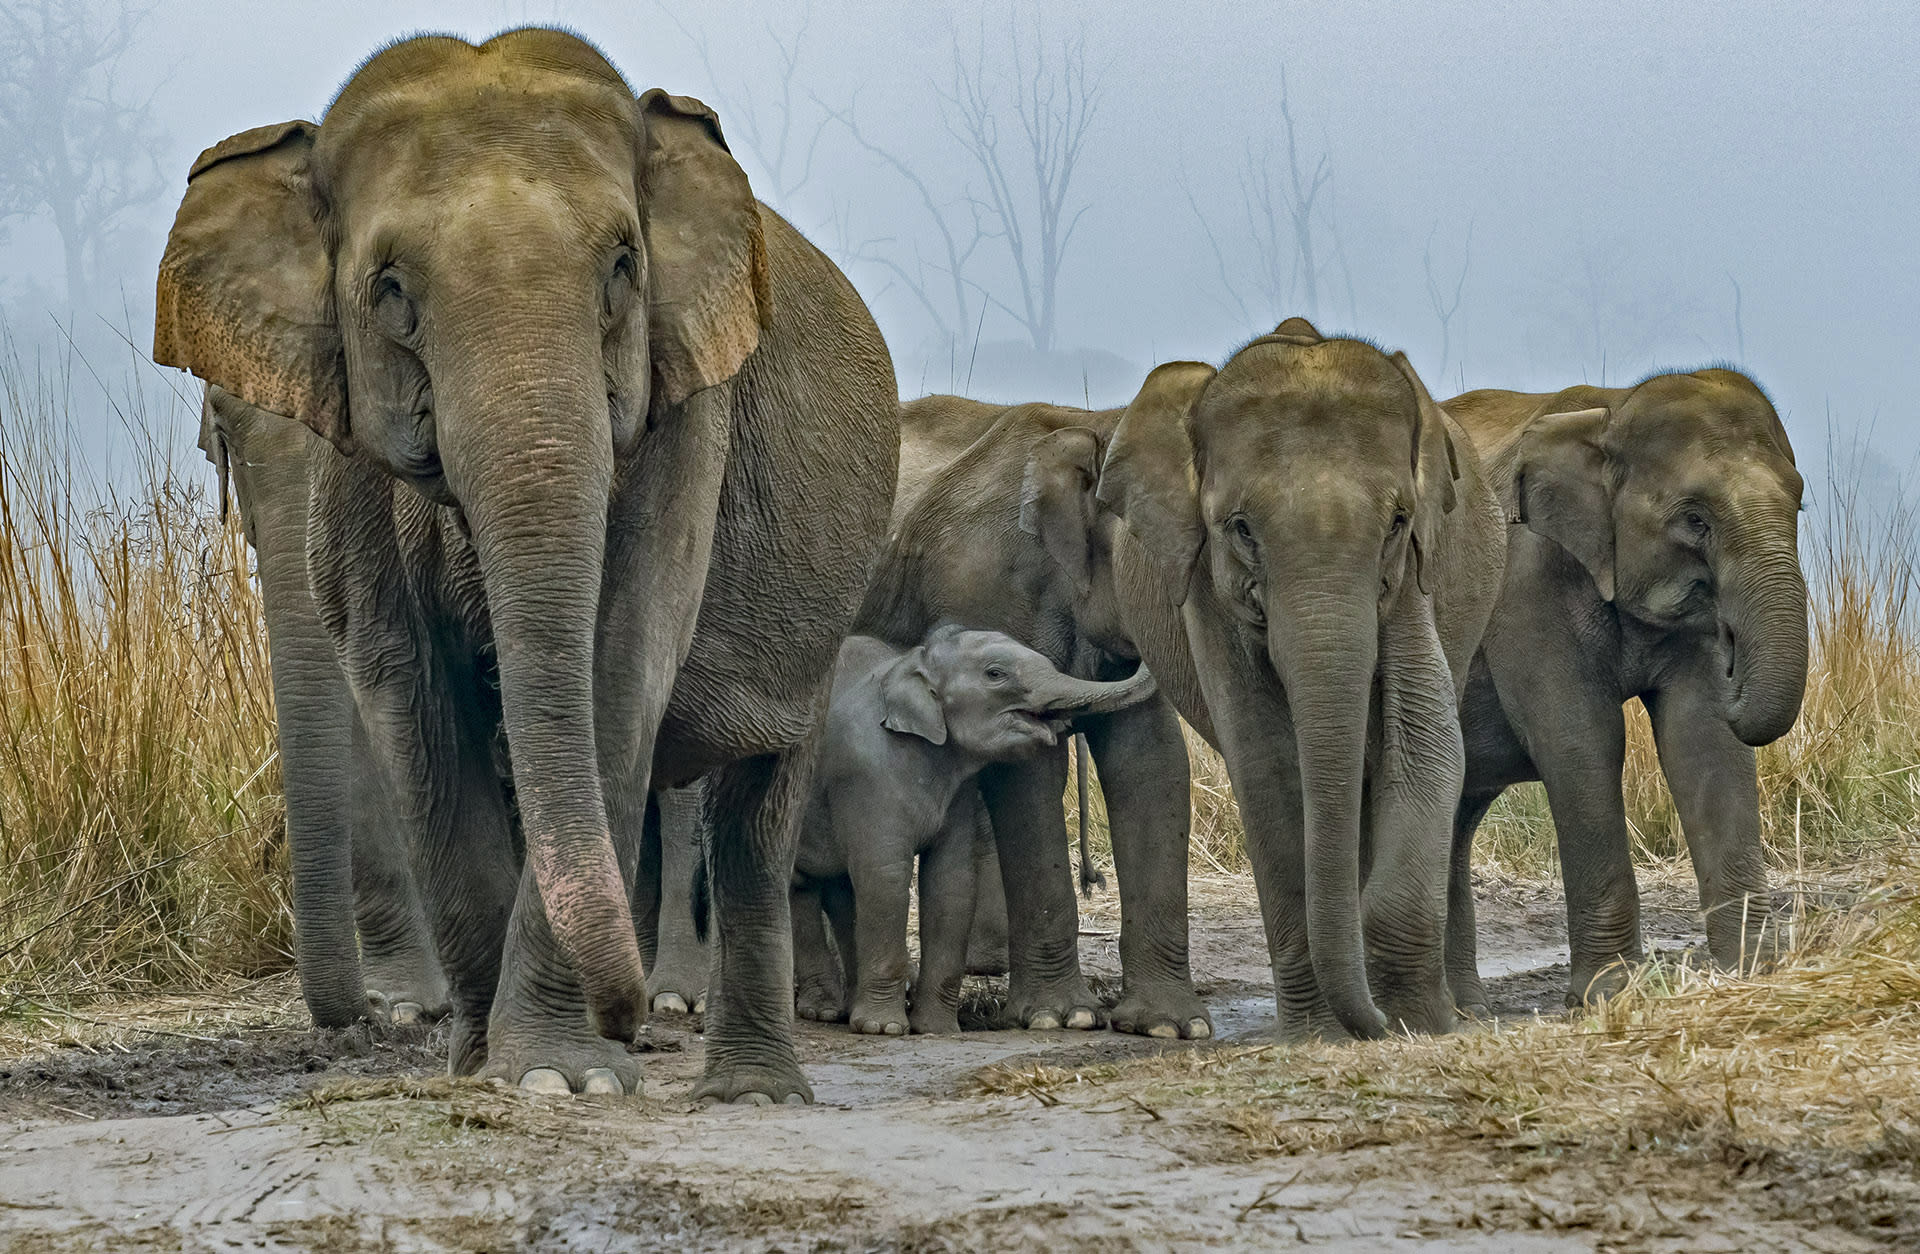 """Elephants also use an array of sounds to communicate with each other, ranging from loud trumpets and roars to softer rumbles and squeals. """"The variety of sounds that elephants can produce ranges in frequency from 10 to 14 Hz to 9000 Hz, and as loud as 103 decibels at 5 m from source,"""" write Vidya and Sukumar.  Different sounds have different purposes. Joshi says, """"Trumpeting occurs when elephants attack, when they are surprised, and when an individual has gone the wrong way and feels that it has lost contact with the herd,"""" but they also trumpet when they are in good spirits. In his study, Joshi notes that solitary bulls often trumpet in the """"early morning hours when they are in cheerful humour."""""""